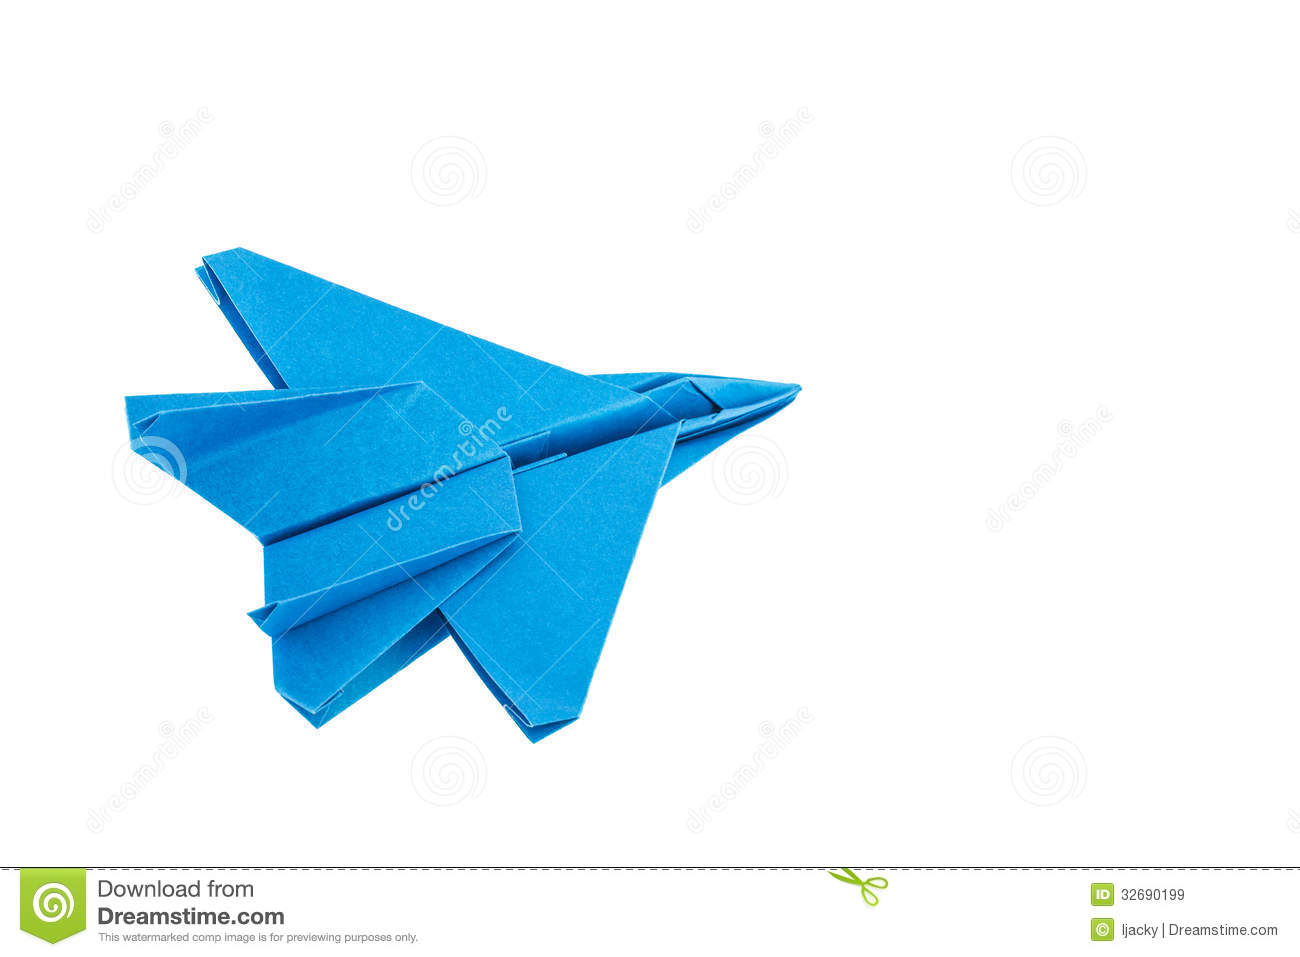 How to make an F15 Eagle Jet Fighter Paper Plane - Crazy Max - YouTube | 957x1300